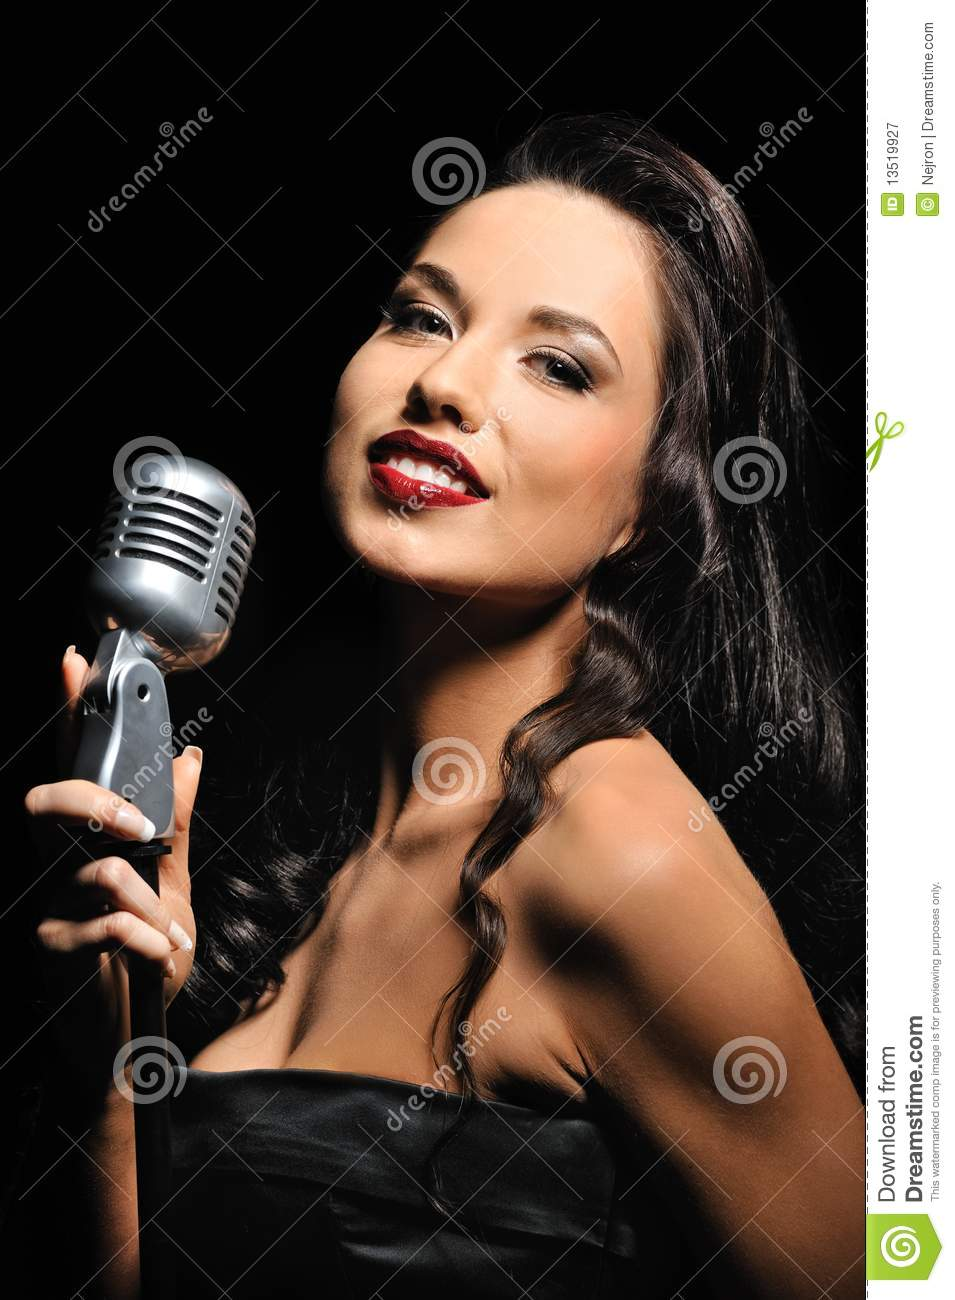 Brunette with a retro microphone